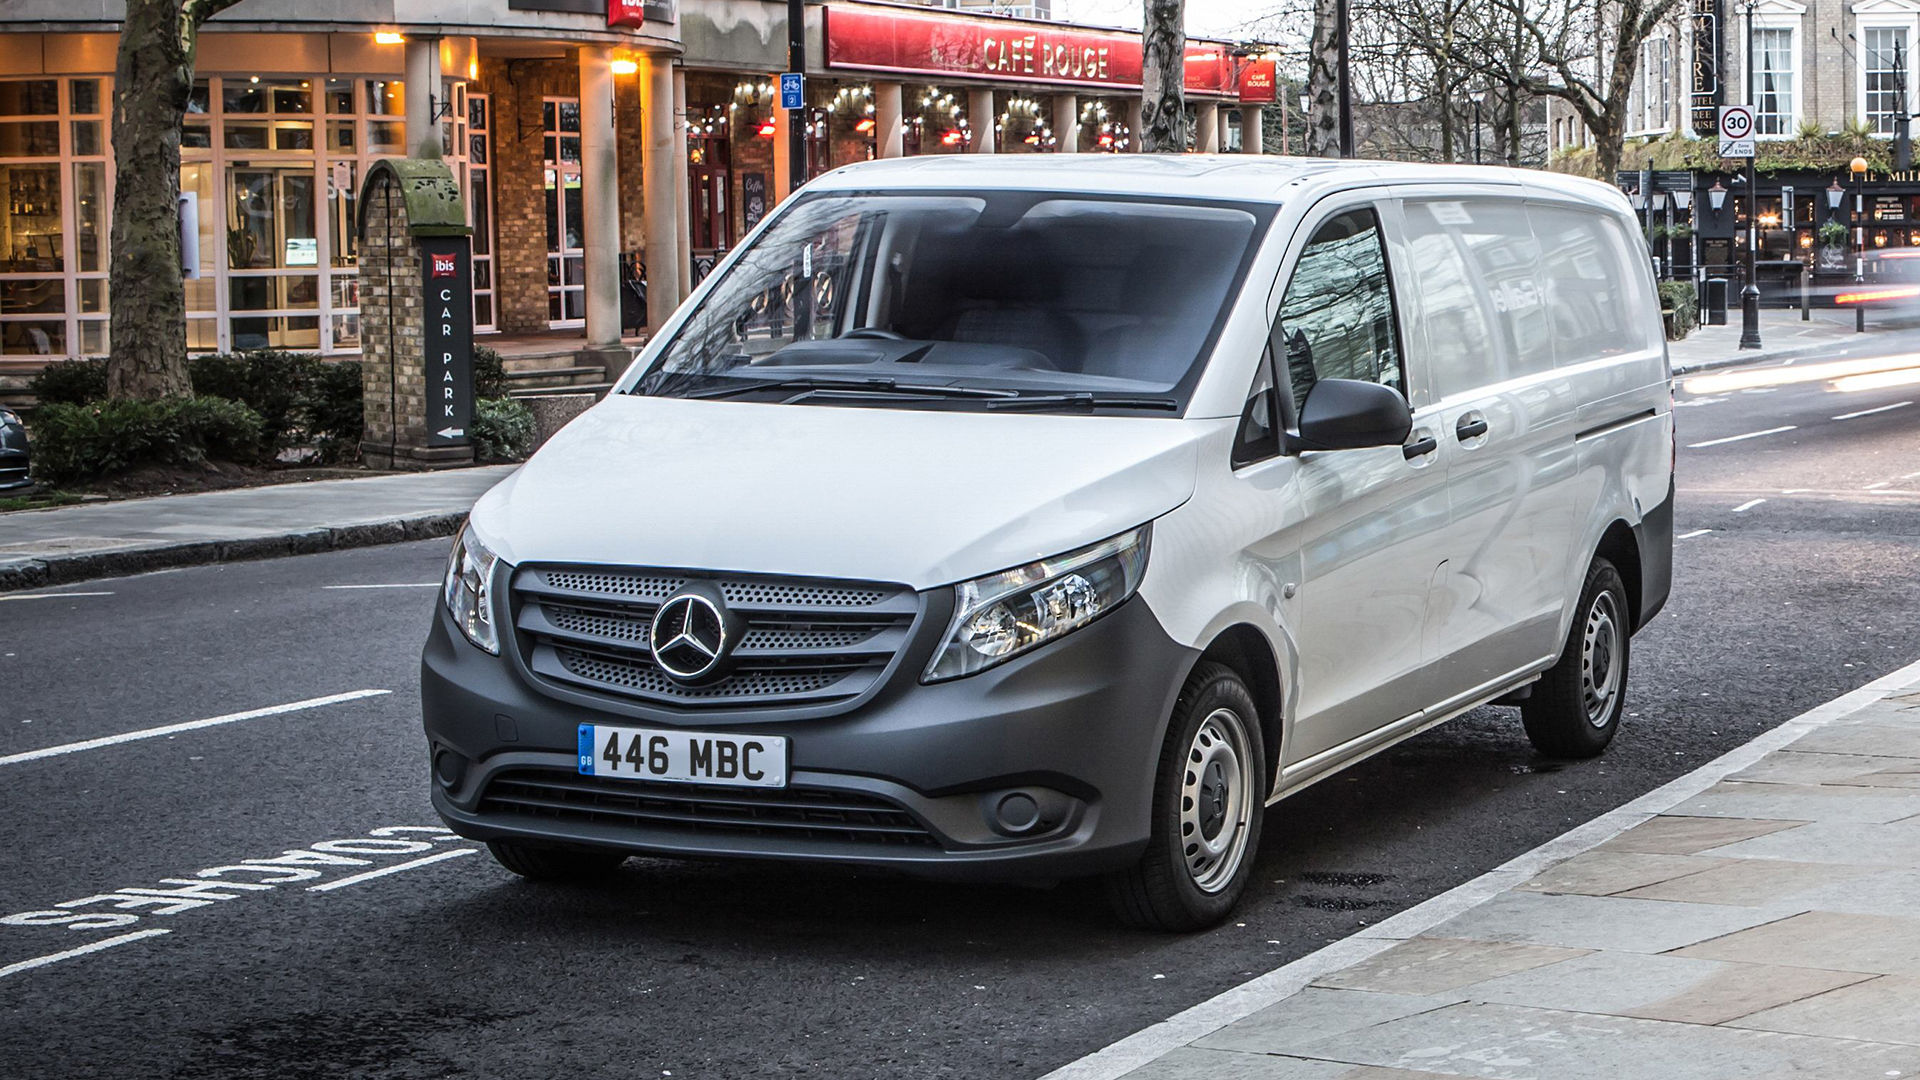 Used Mercedes Benz Vito Vans For Sale Auto Trader Vans